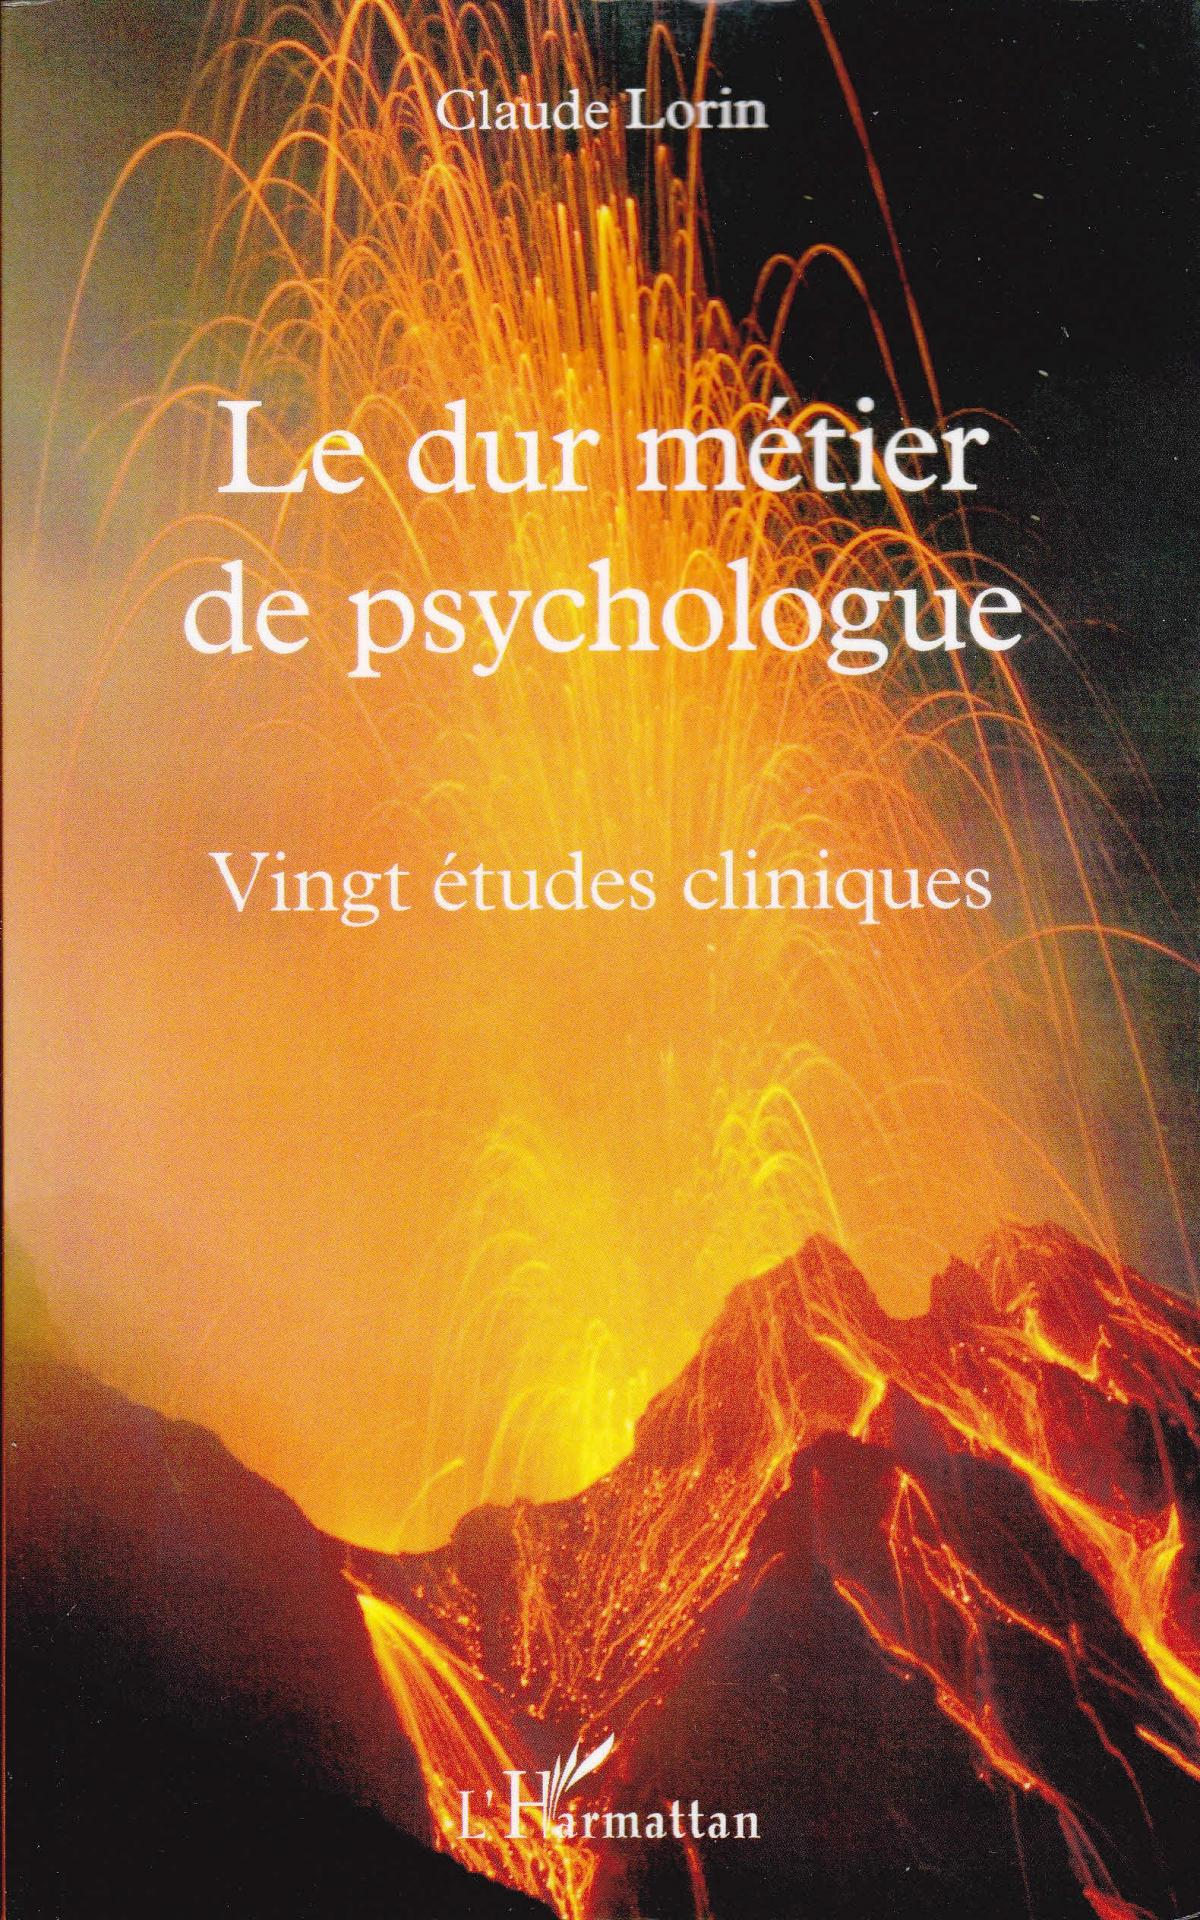 le-dur-metier-de-psychologue-2.jpg